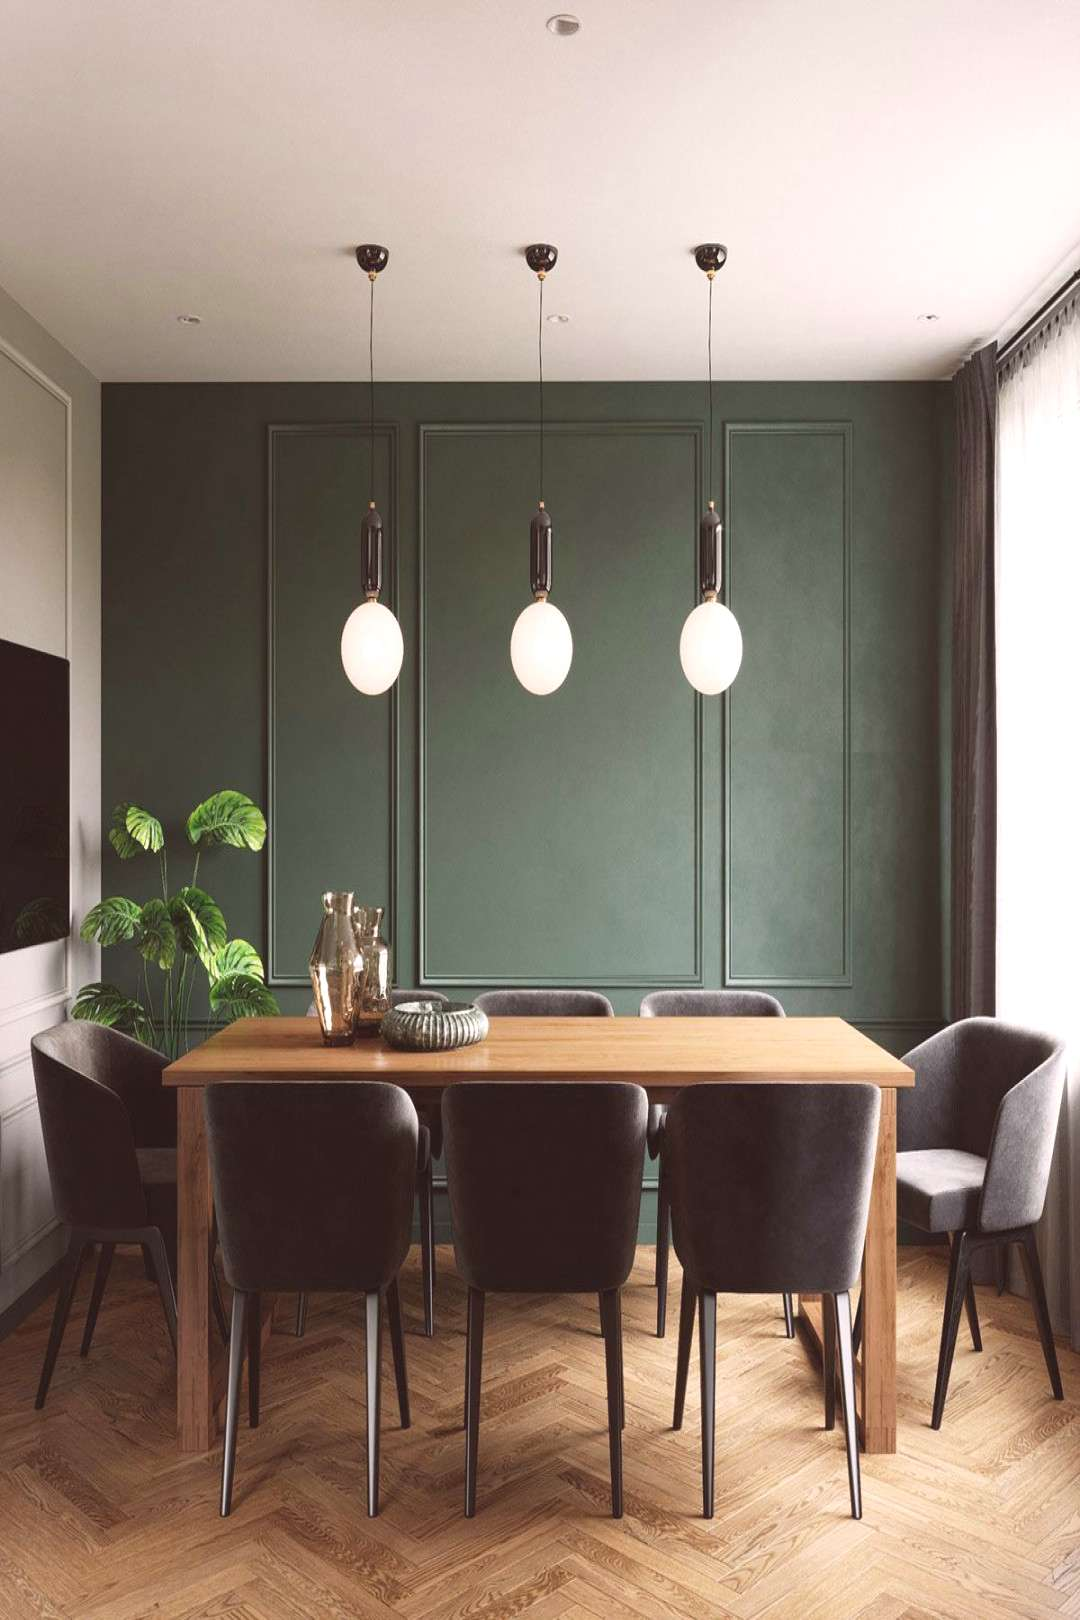 Beautiful dining room pendant lights by Jaime Hayon hang in a row above the table. Not only do thes